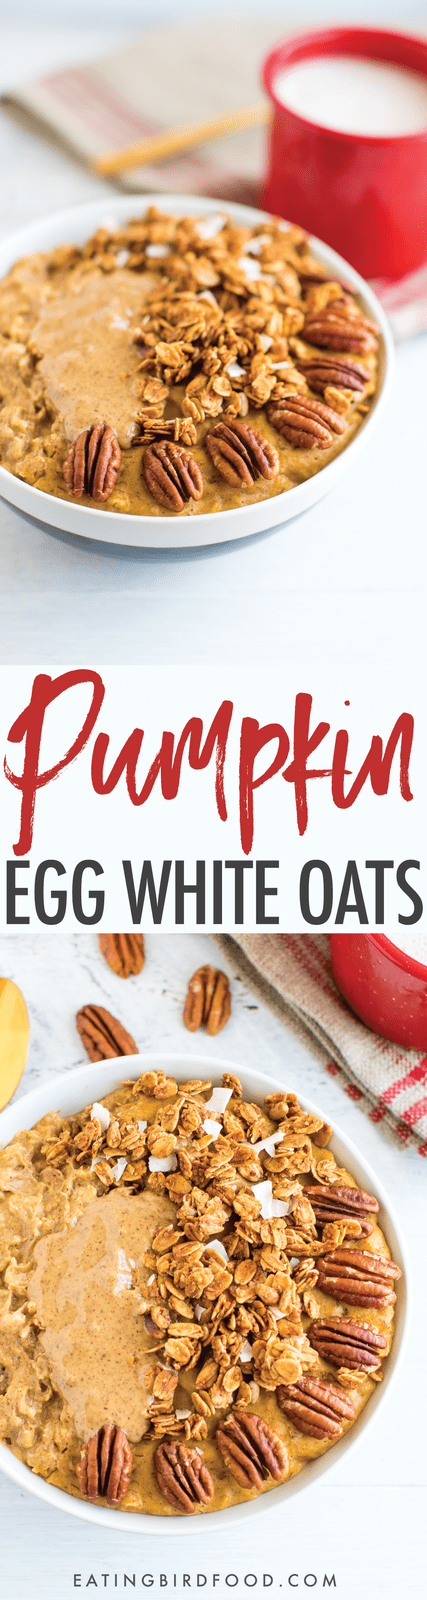 This protein pumpkin oatmeal recipe is loaded with pumpkin flavor and protein. The secret is whipping egg whites into the oats while they cook!